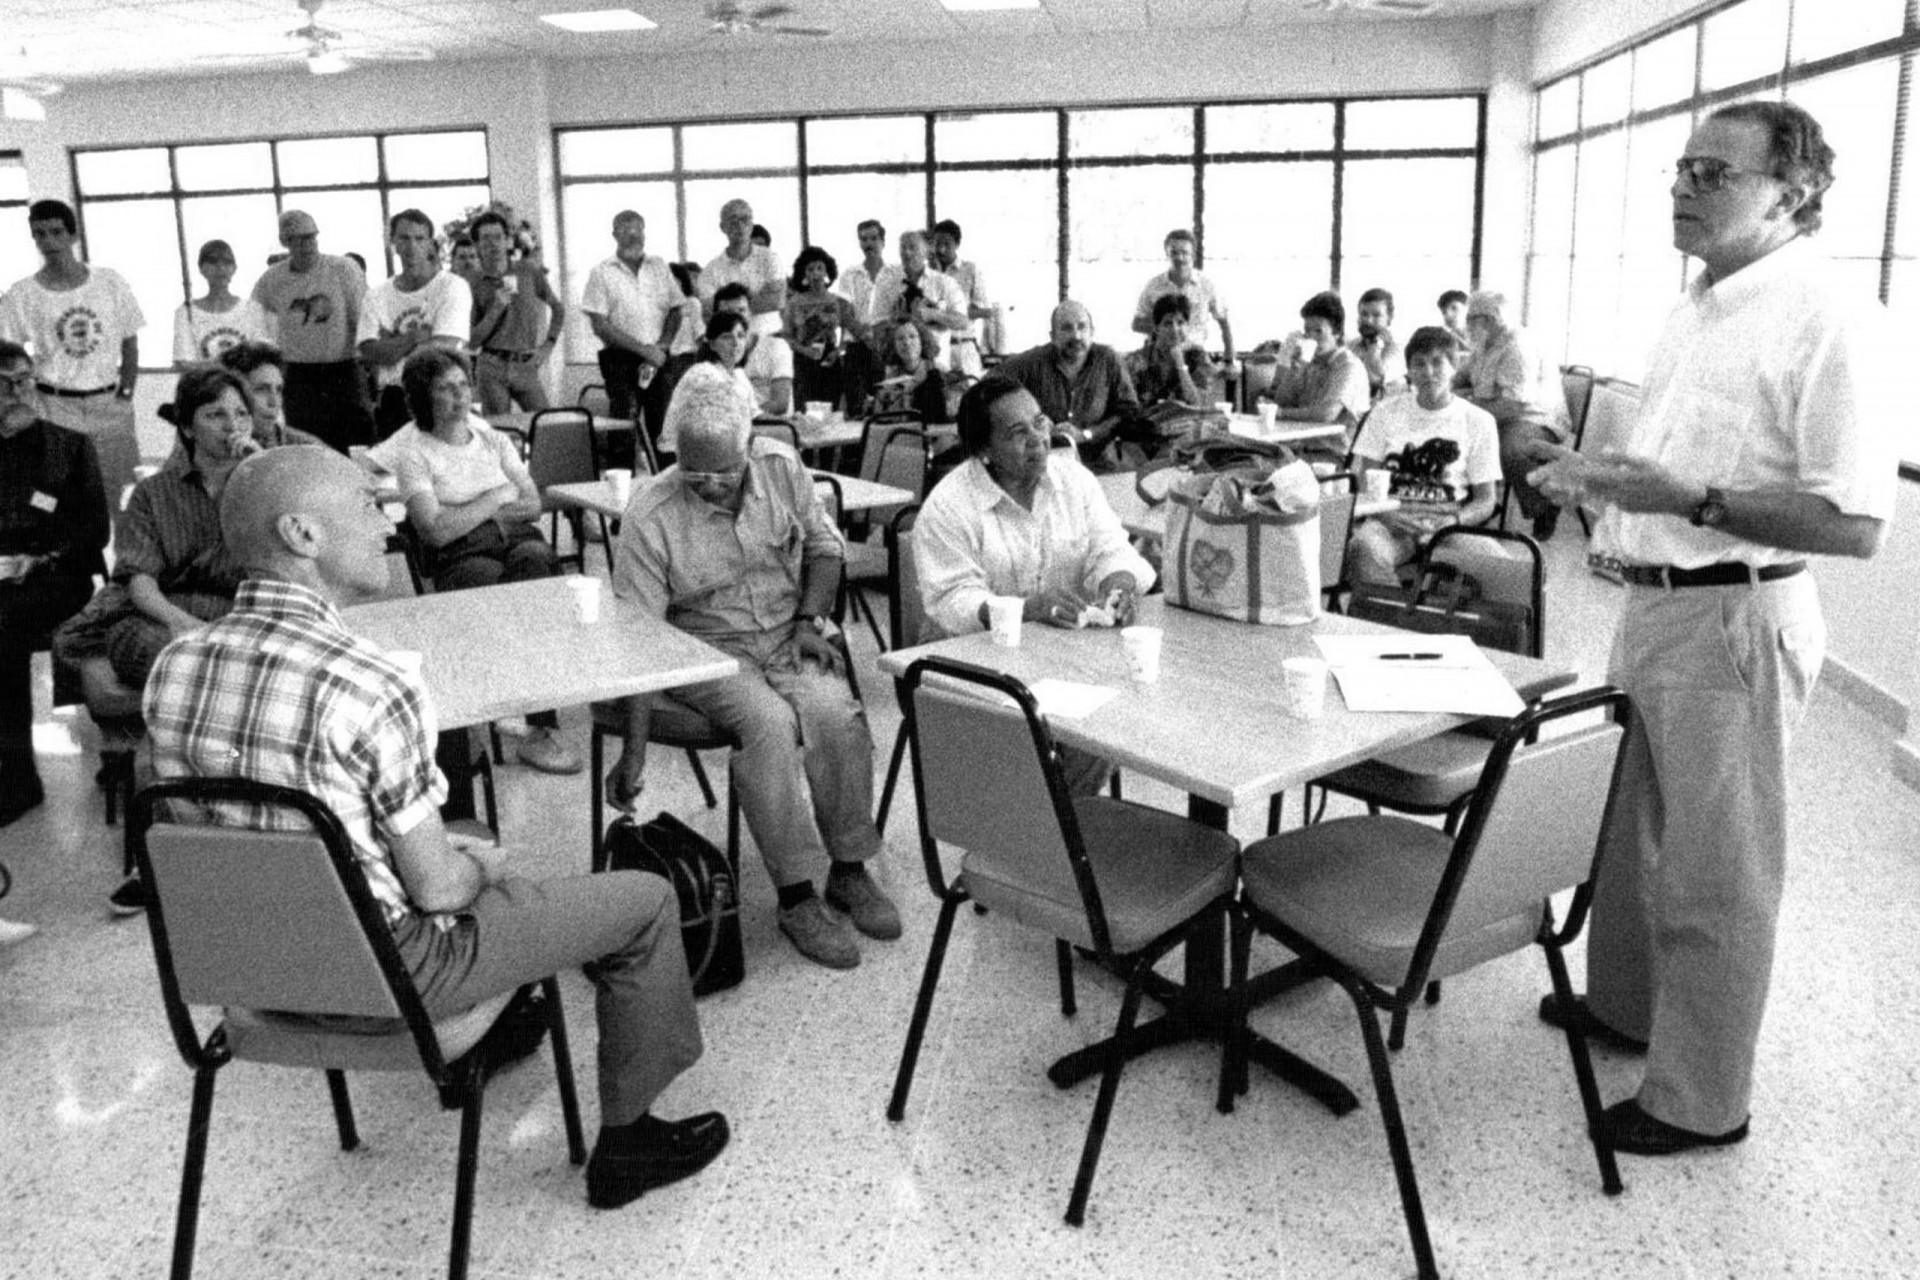 Ira Rubinoff, right, speaks in the dining room at Barro Colorado Island